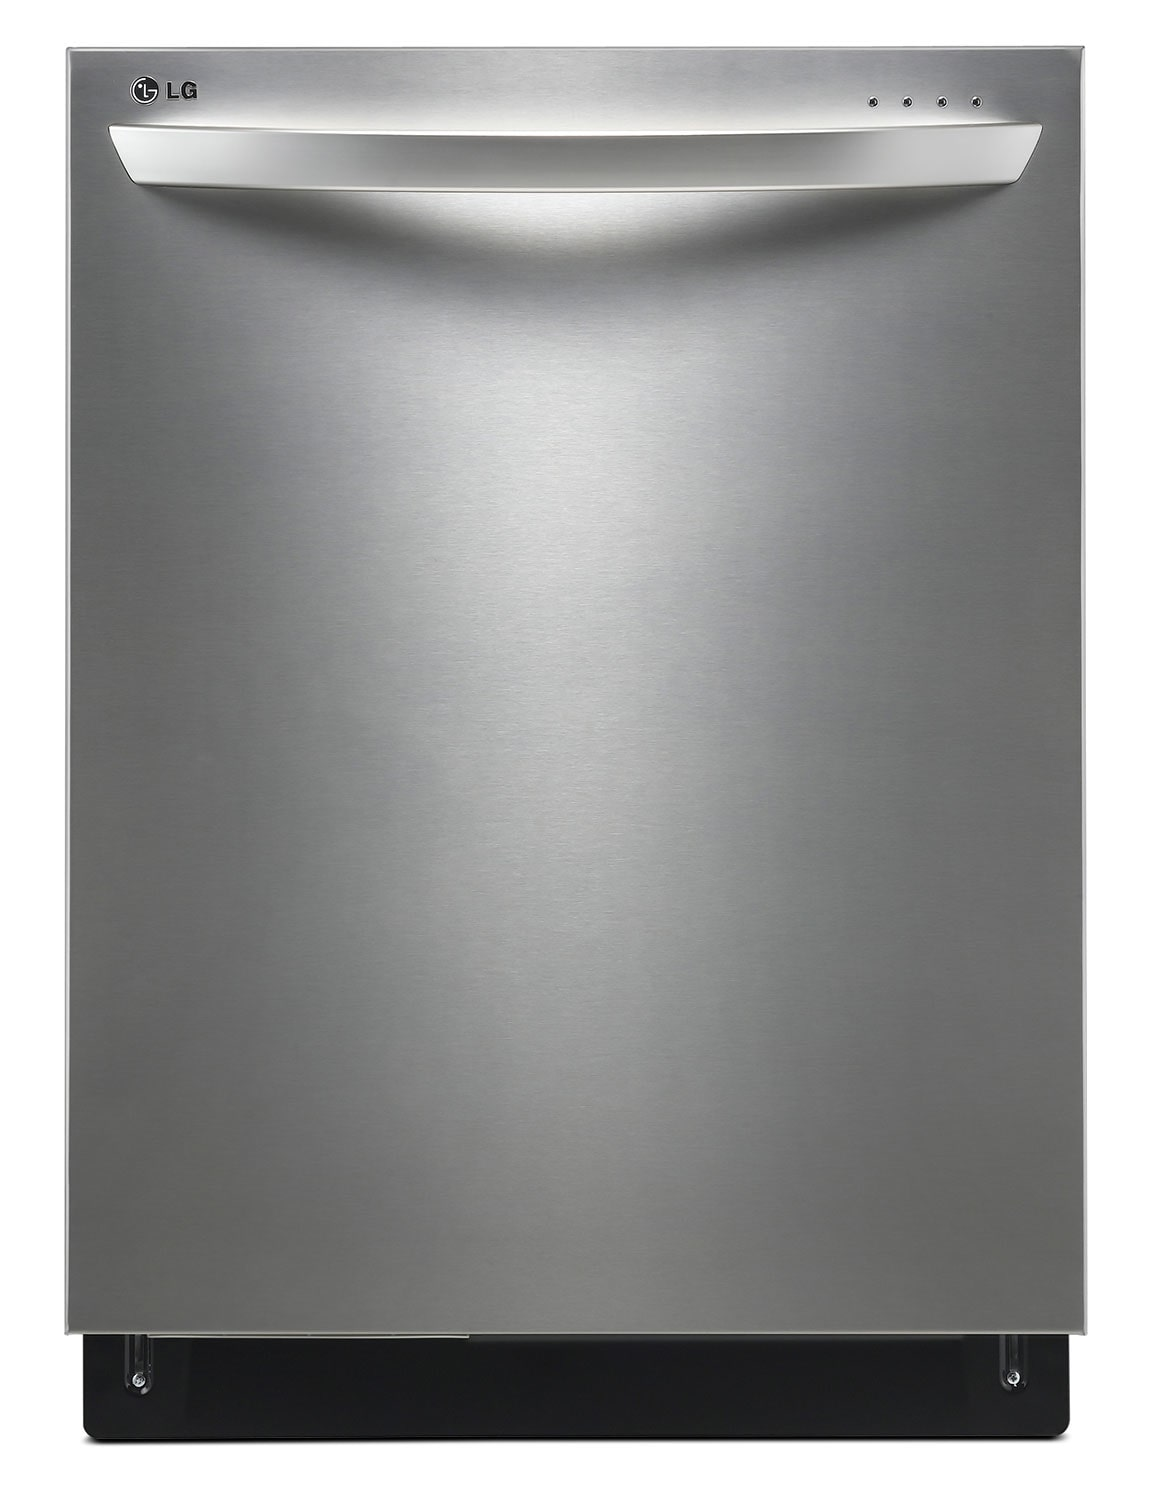 Clean-Up - LG Fully Integrated Dishwasher with TrueSteam™ – Stainless Steel